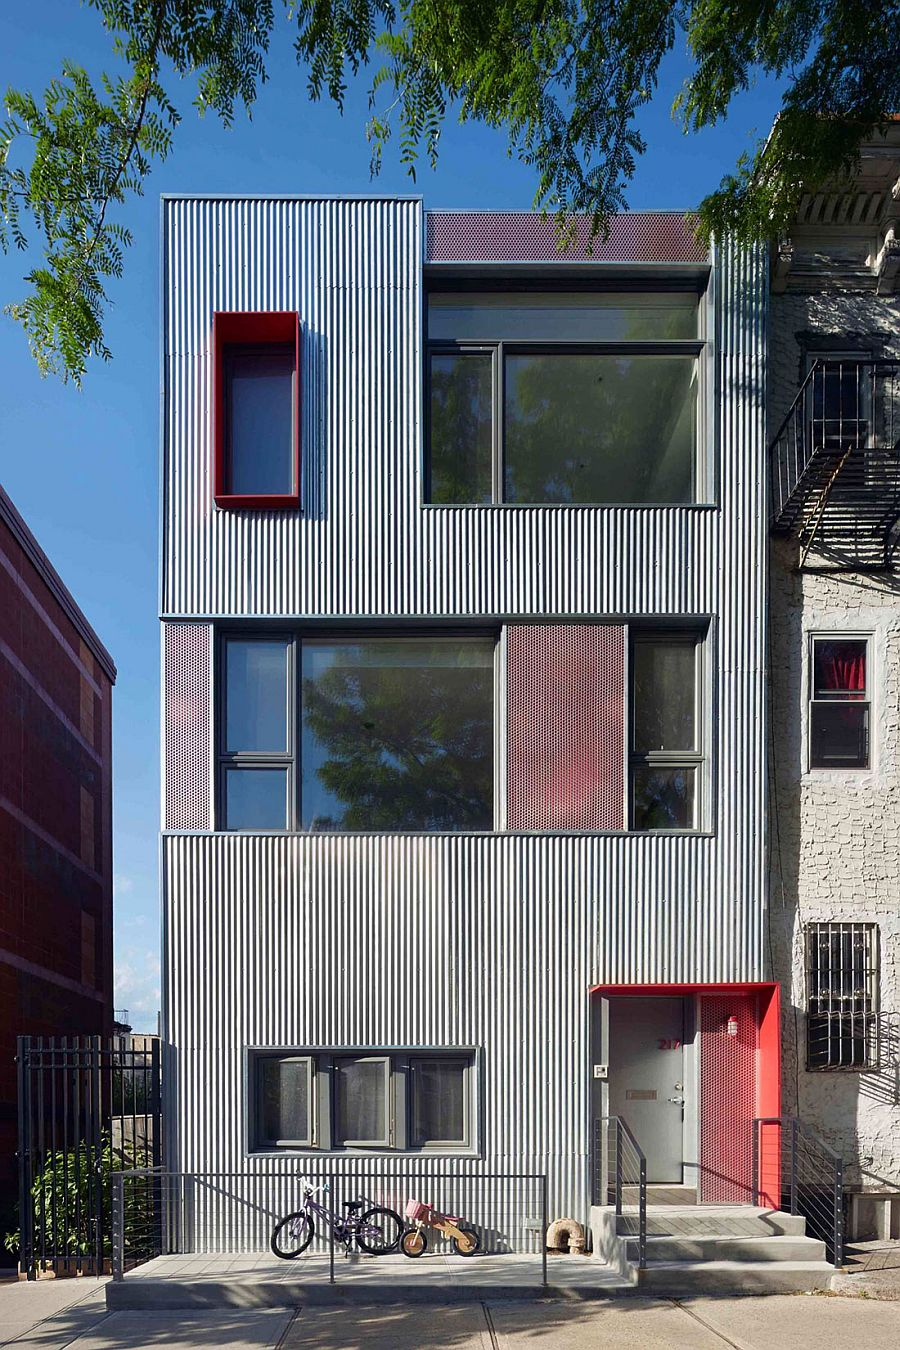 Galvanized steel shapes the distinct extreior of the renovated home Budget Brooklyn Renovation Fuses Industrial Sparkle with Modern Style